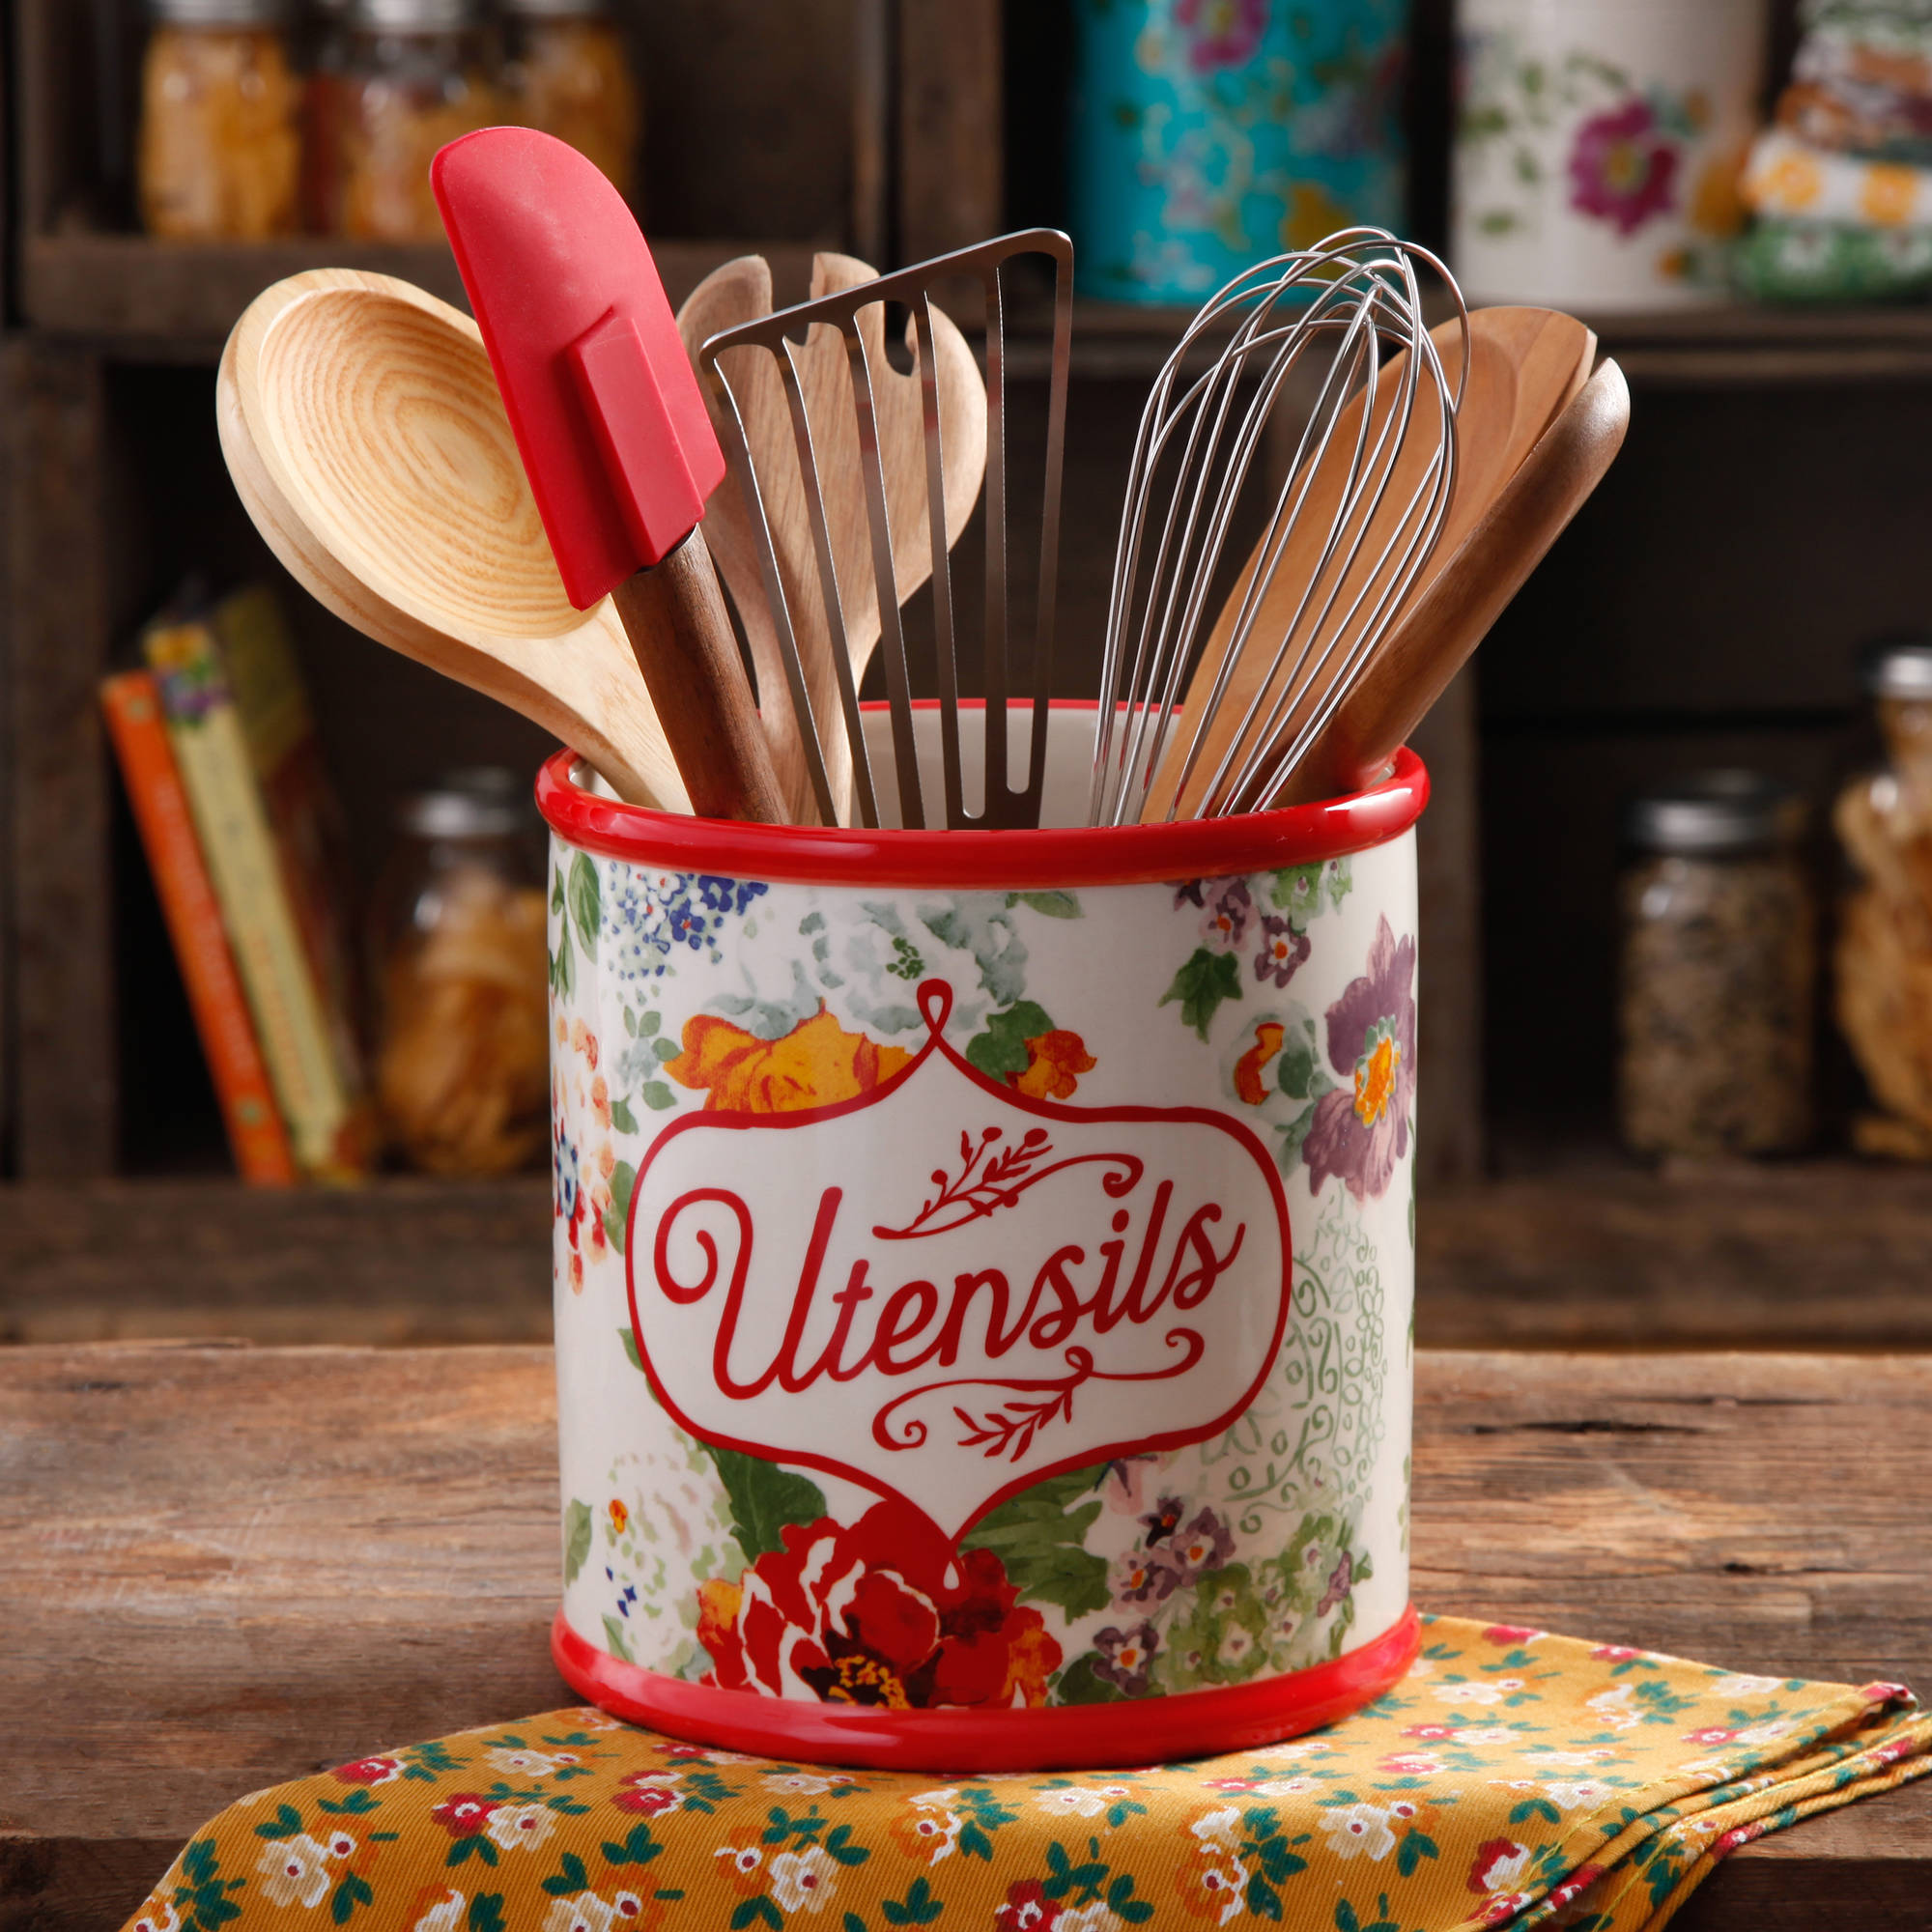 The Pioneer Woman Country Garden Utensil Crock